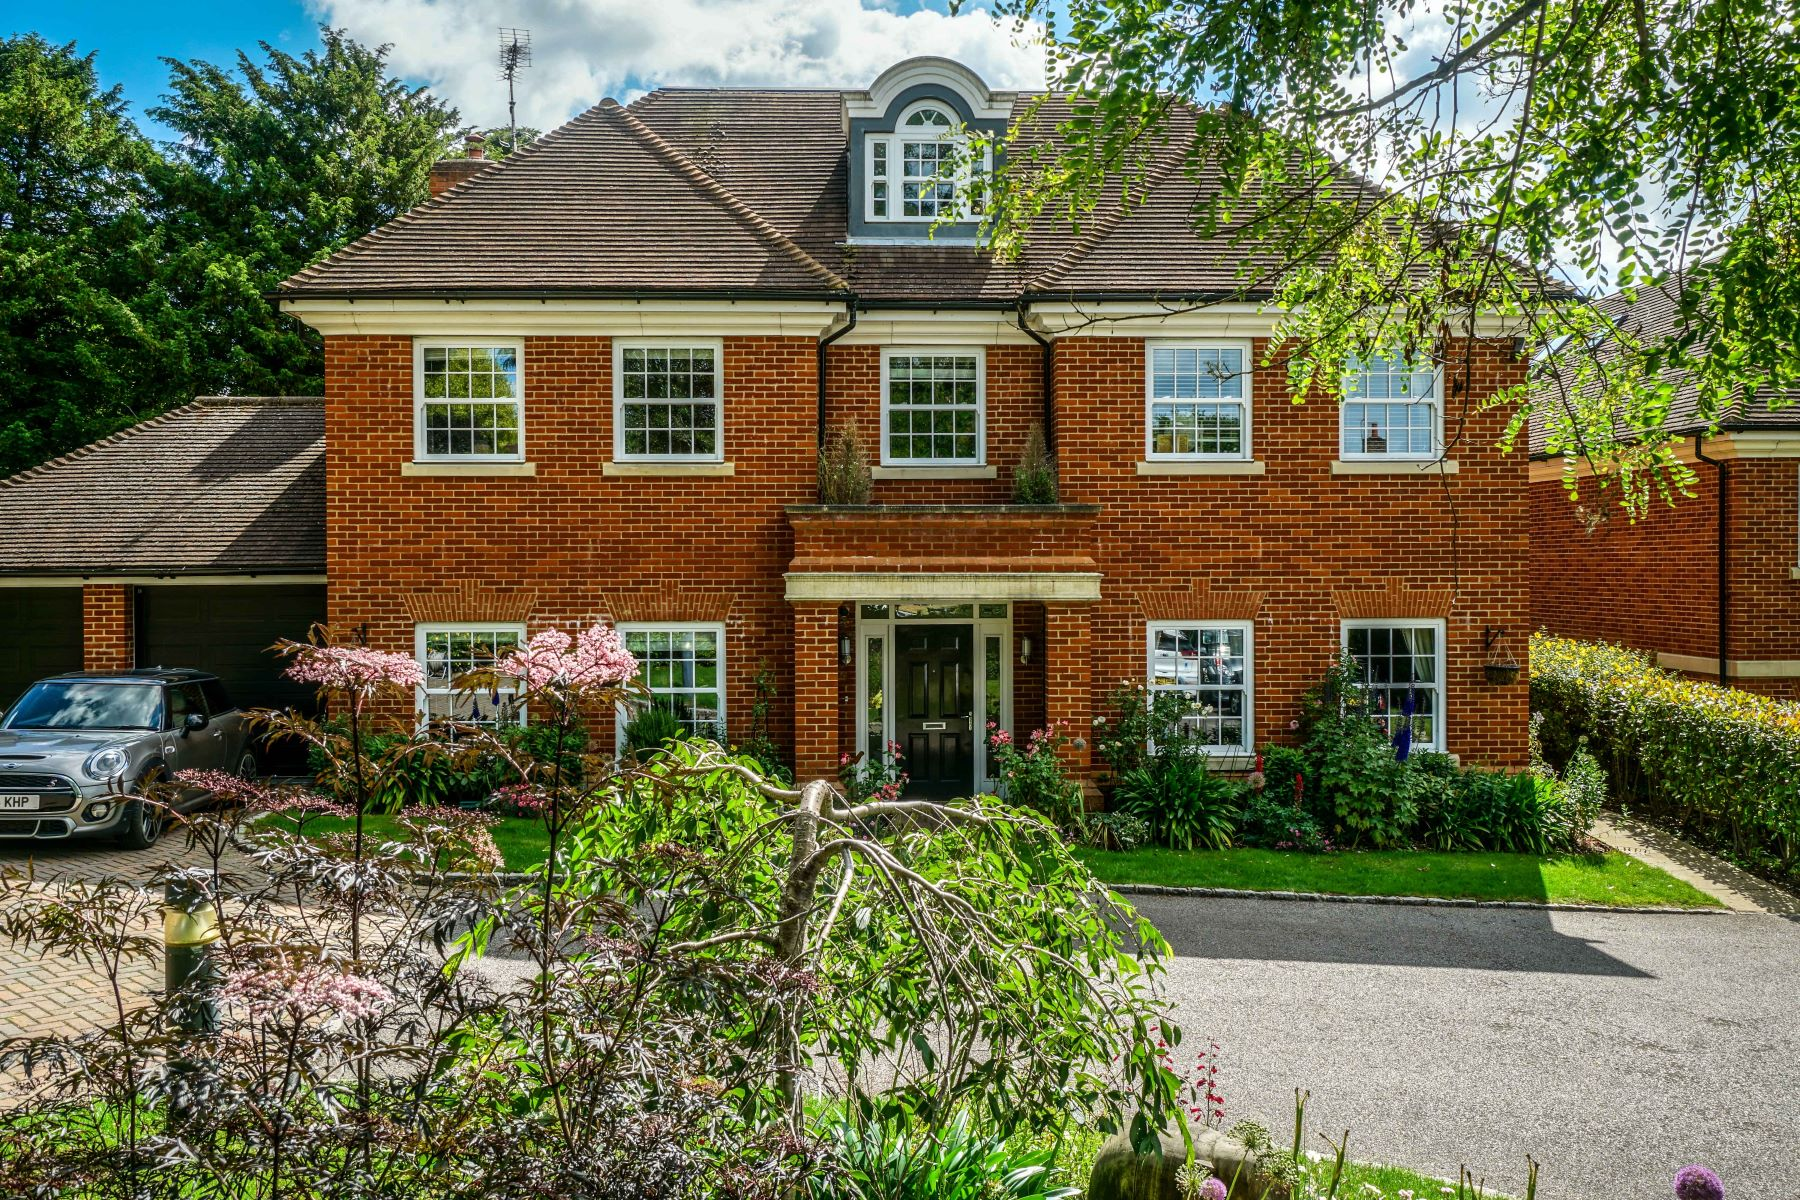 Single Family Homes for Sale at 1 Wychwood Close Oxshott Leatherhead, England KT22 0JA United Kingdom